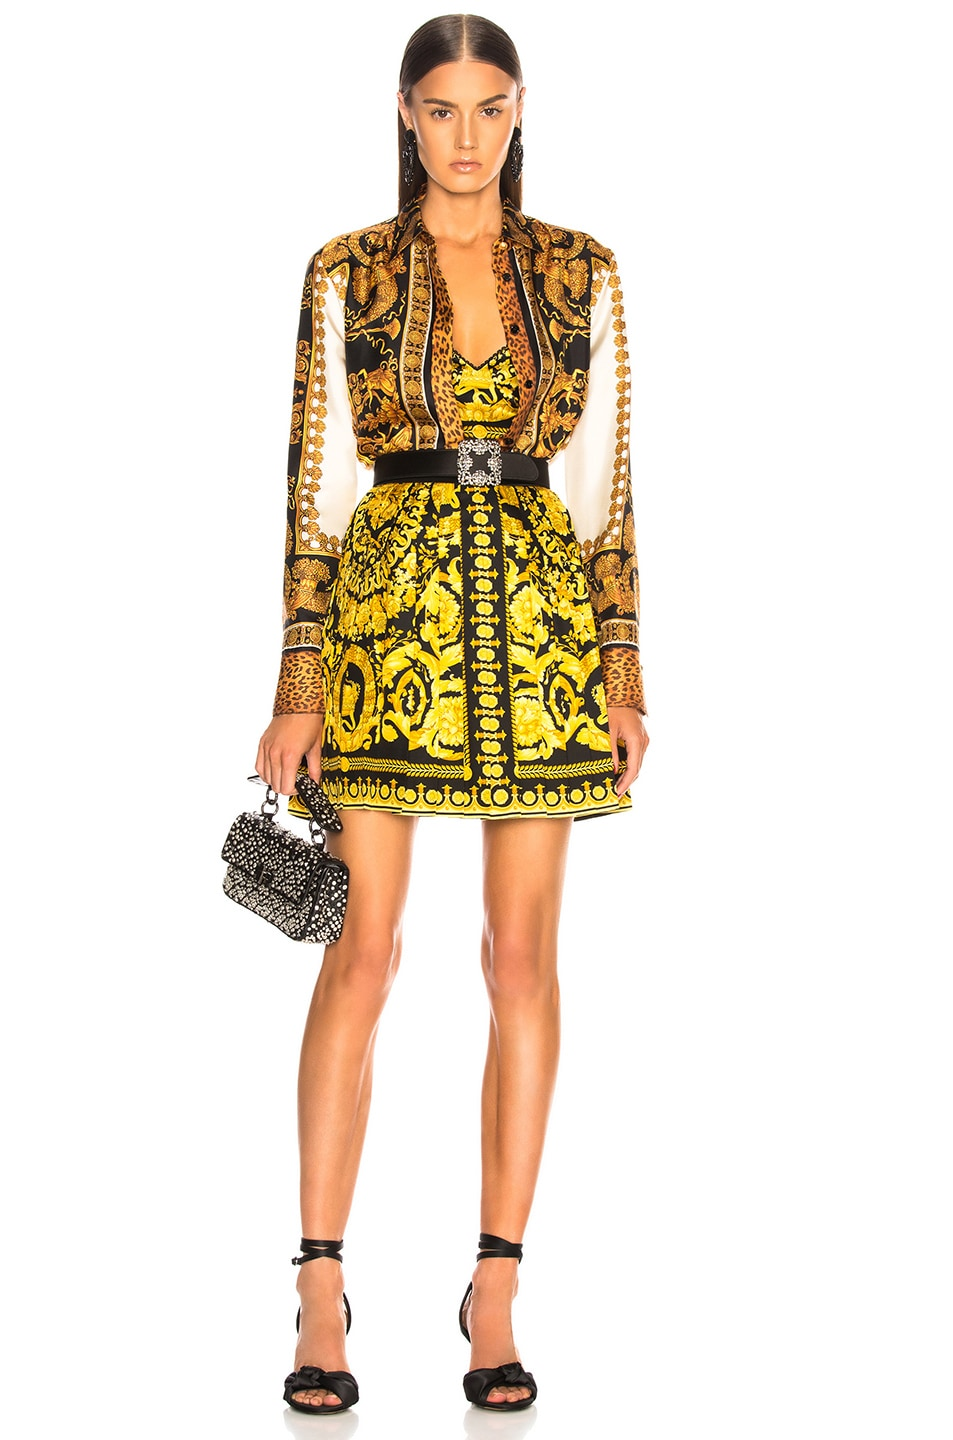 4eaa3ca7 VERSACE Scarf Print Blouse in Yellow Multicolor   FWRD